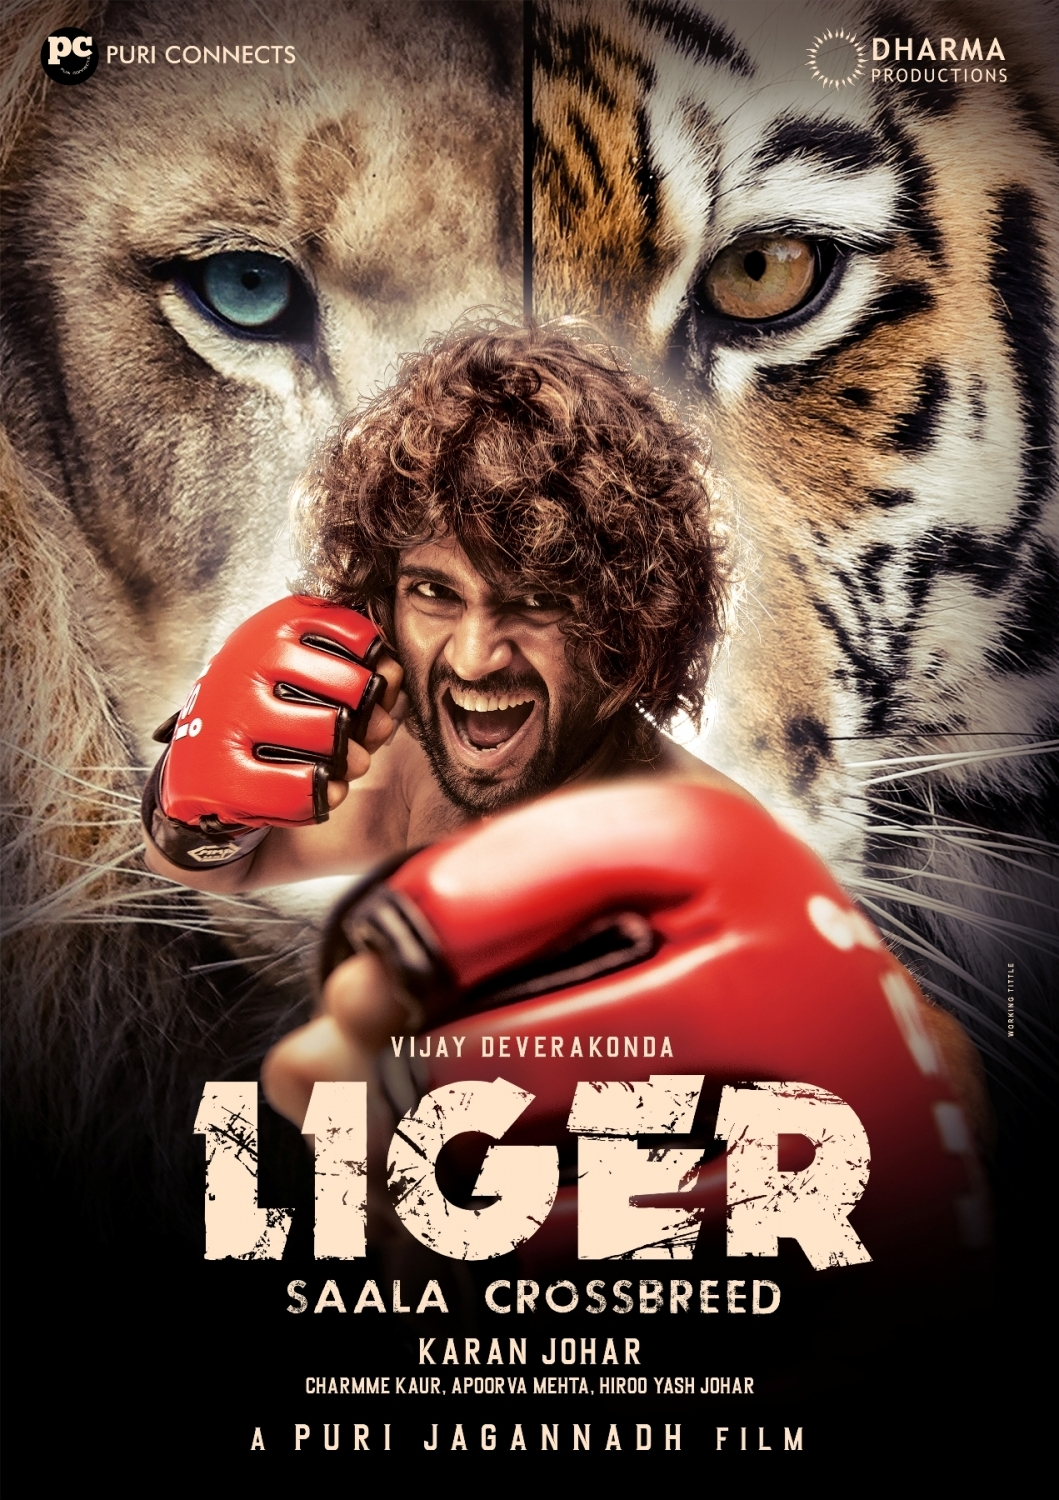 Vijay Deverakonda-Ananya Panday's 'Liger' in theatres on Sep 9